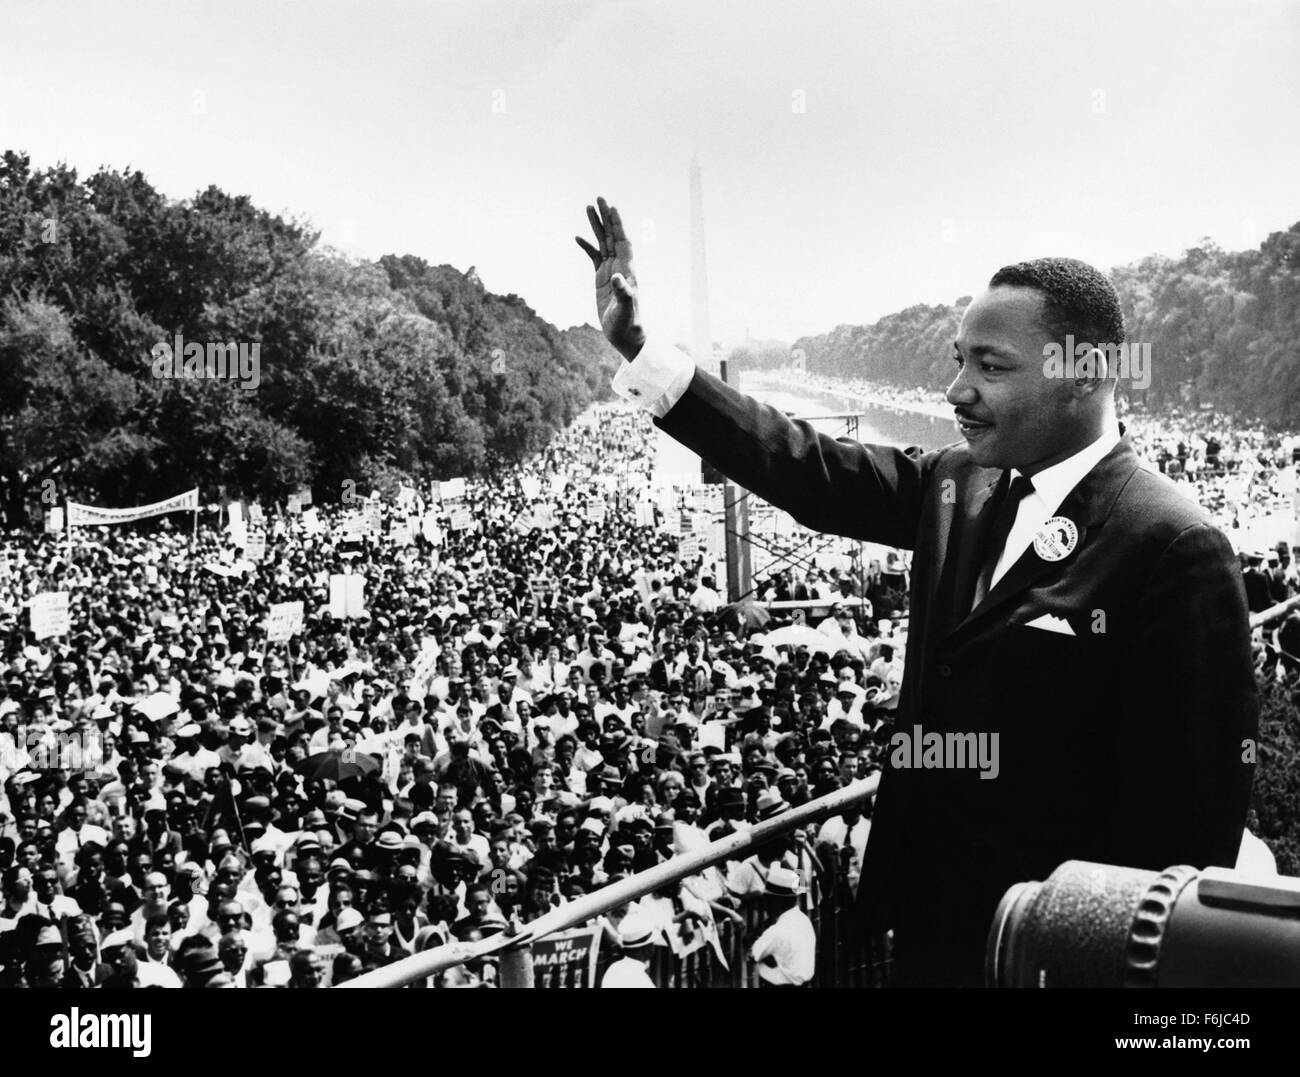 Jan 19, 2004; Hollywood, CA, USA; DR. MARTIN LUTHER KING addresses a large crowd at a civil rights march in Washington, - Stock Image